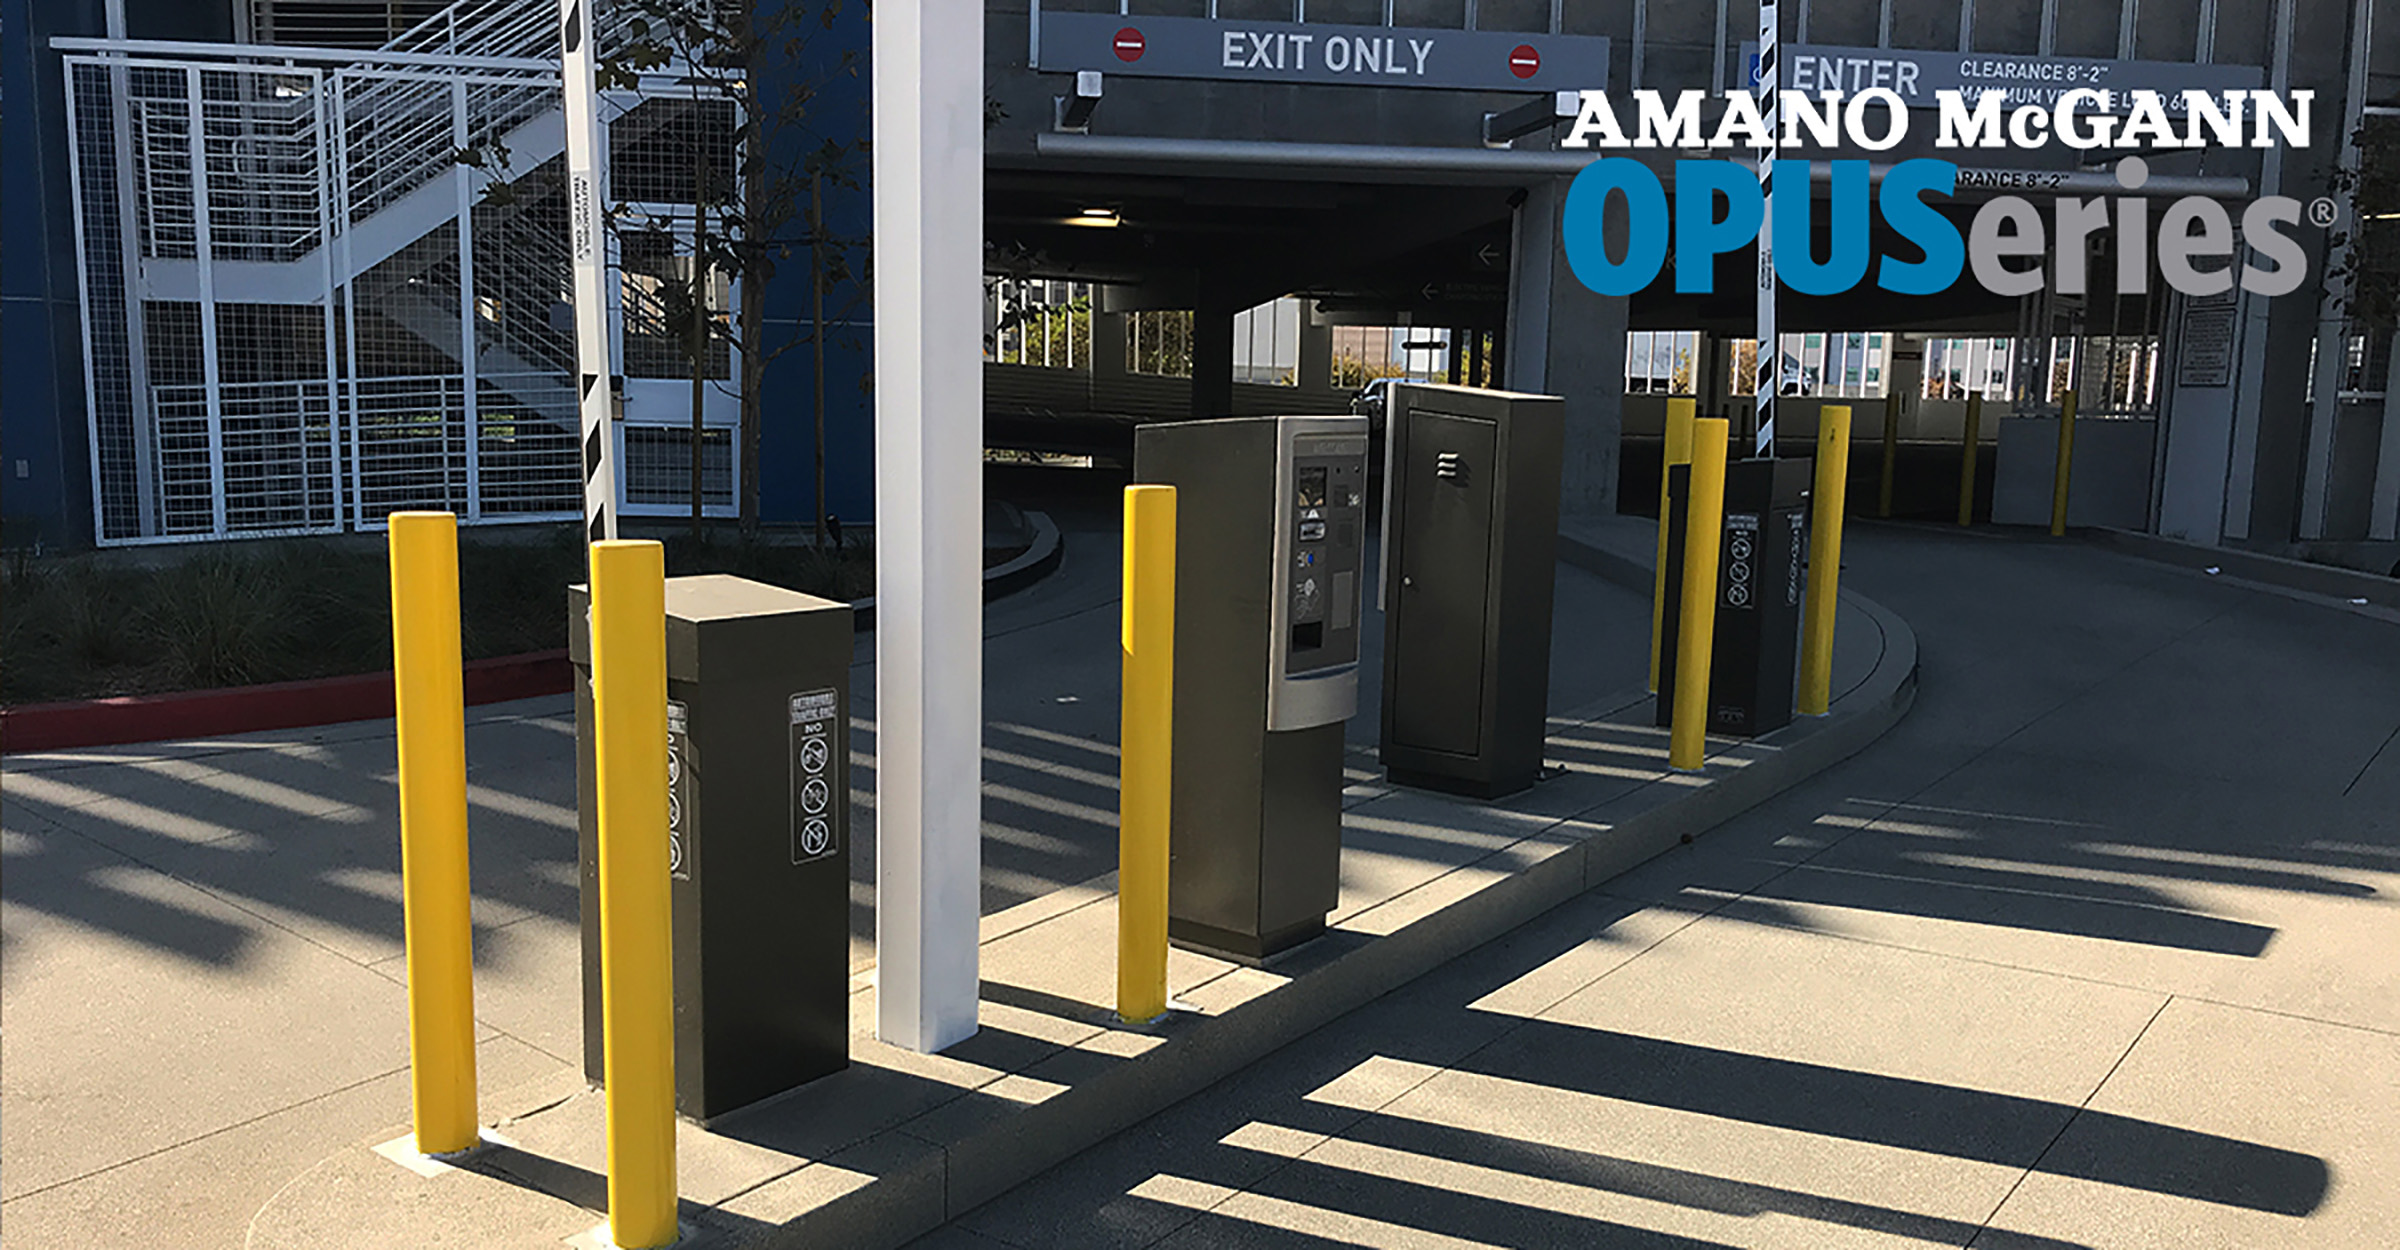 Radisson Blu Anaheim Selects OPUSeries for Parking Control